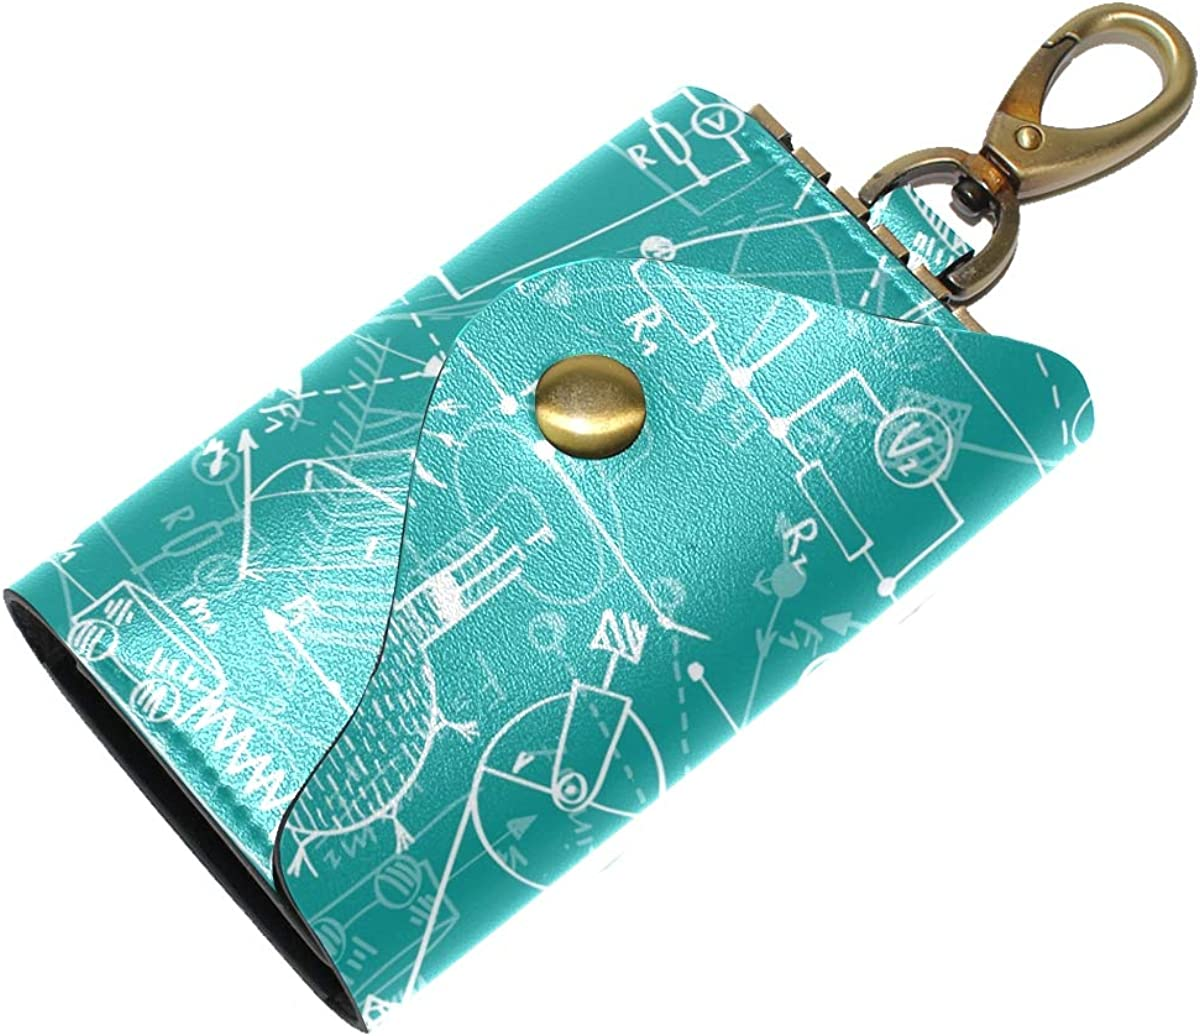 KEAKIA Physics Pattern Greenblue Leather Key Case Wallets Tri-fold Key Holder Keychains with 6 Hooks 2 Slot Snap Closure for Men Women